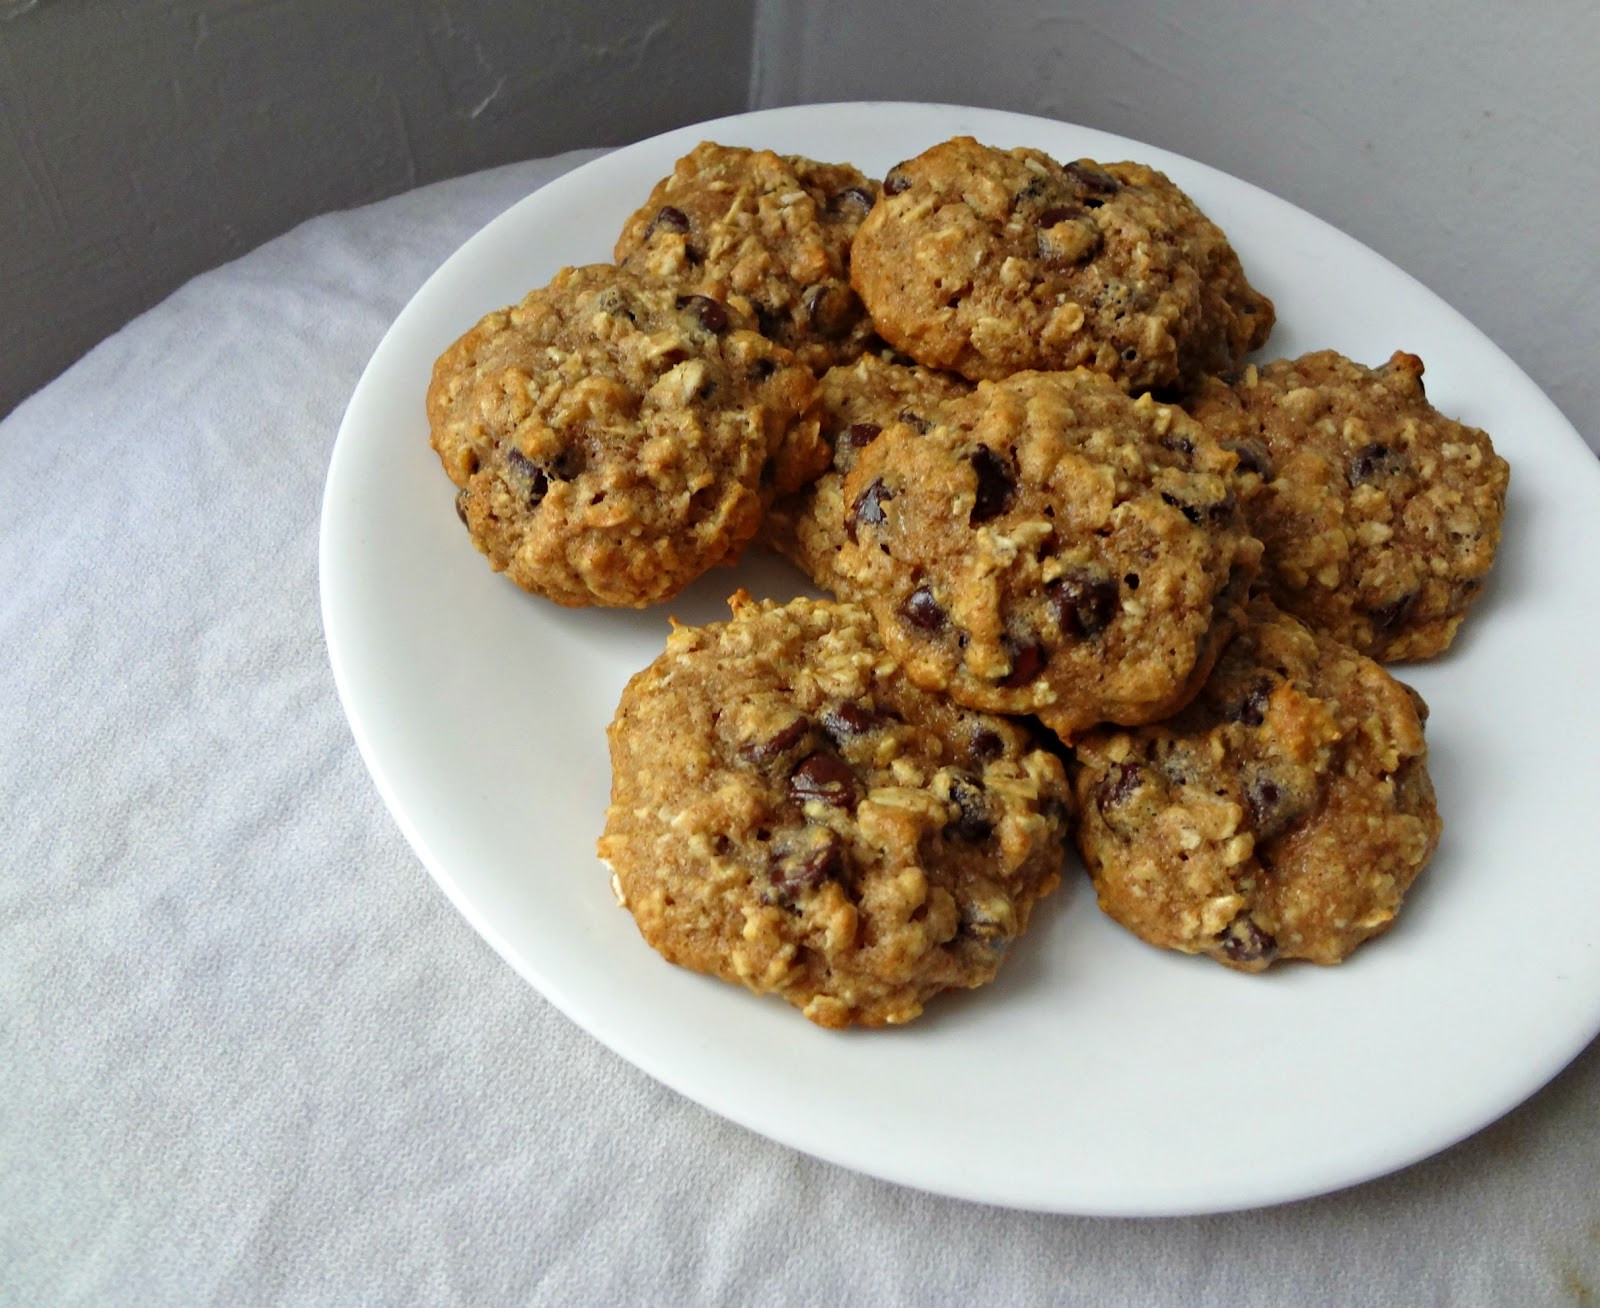 Chocolate Oatmeal Cookies Healthy  The Cooking Actress Healthy Oatmeal Chocolate Chip Cookies